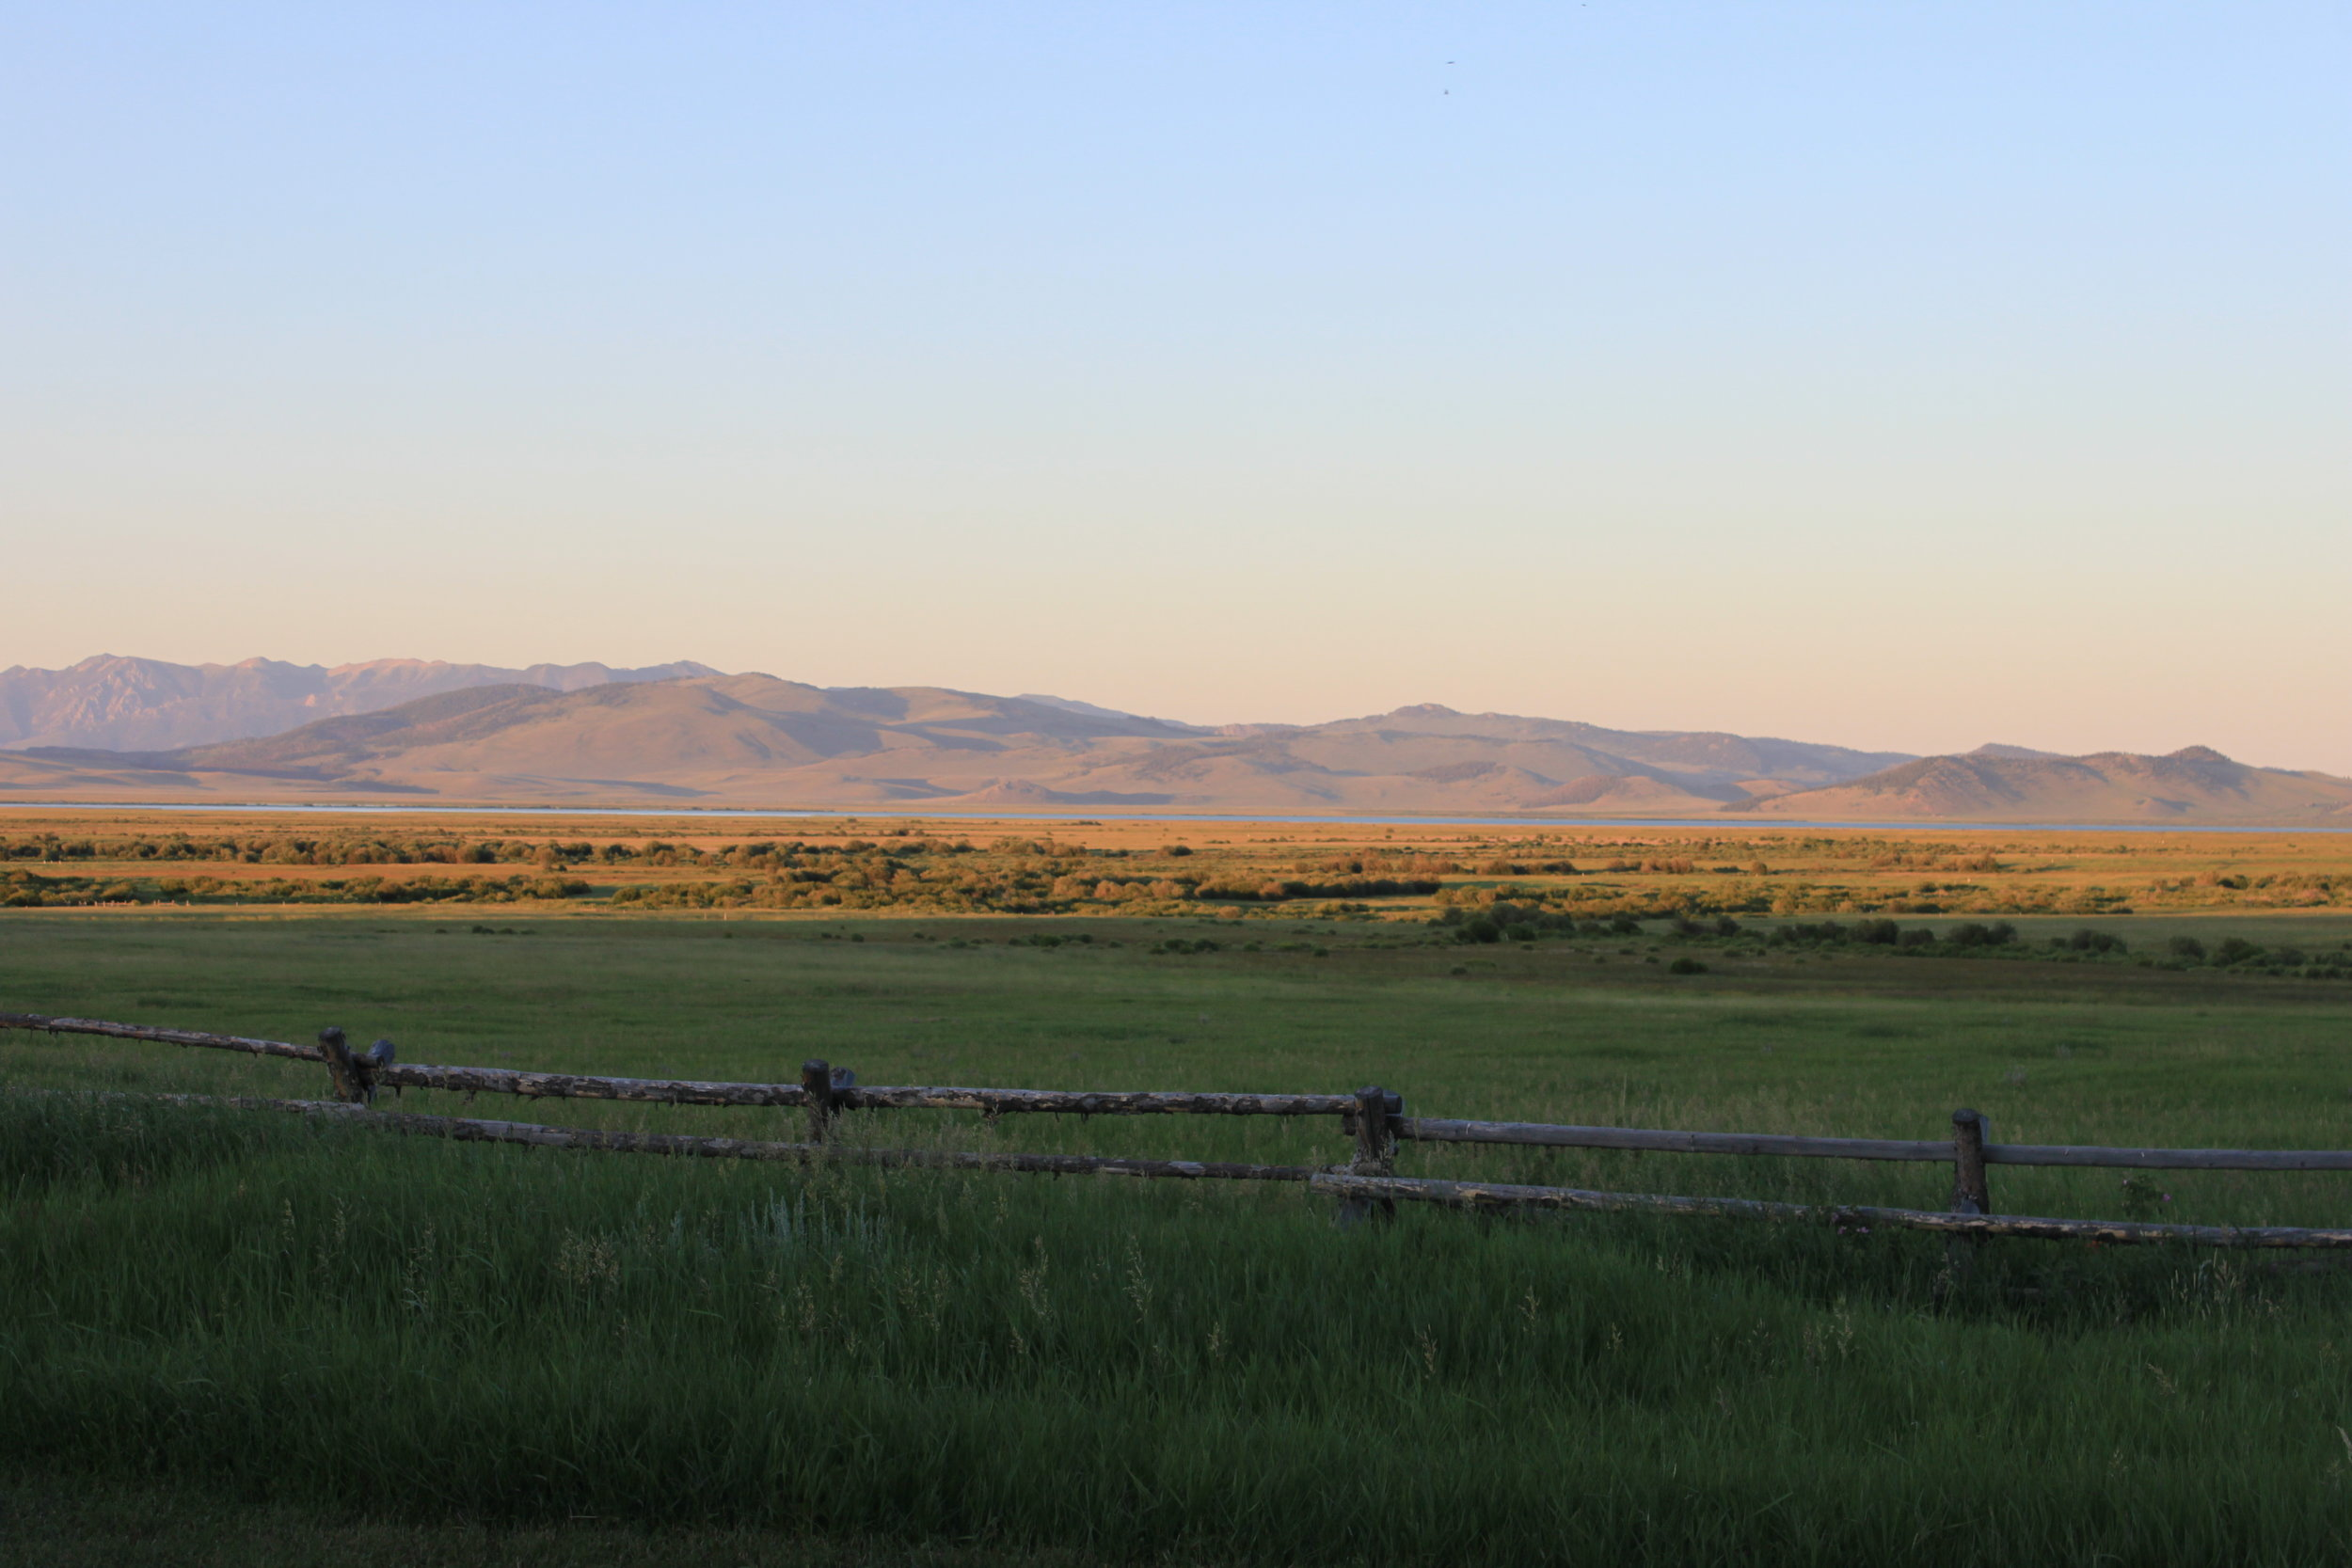 Photo of some big sky from a 2011 trip to Montana's Centennial Valley.